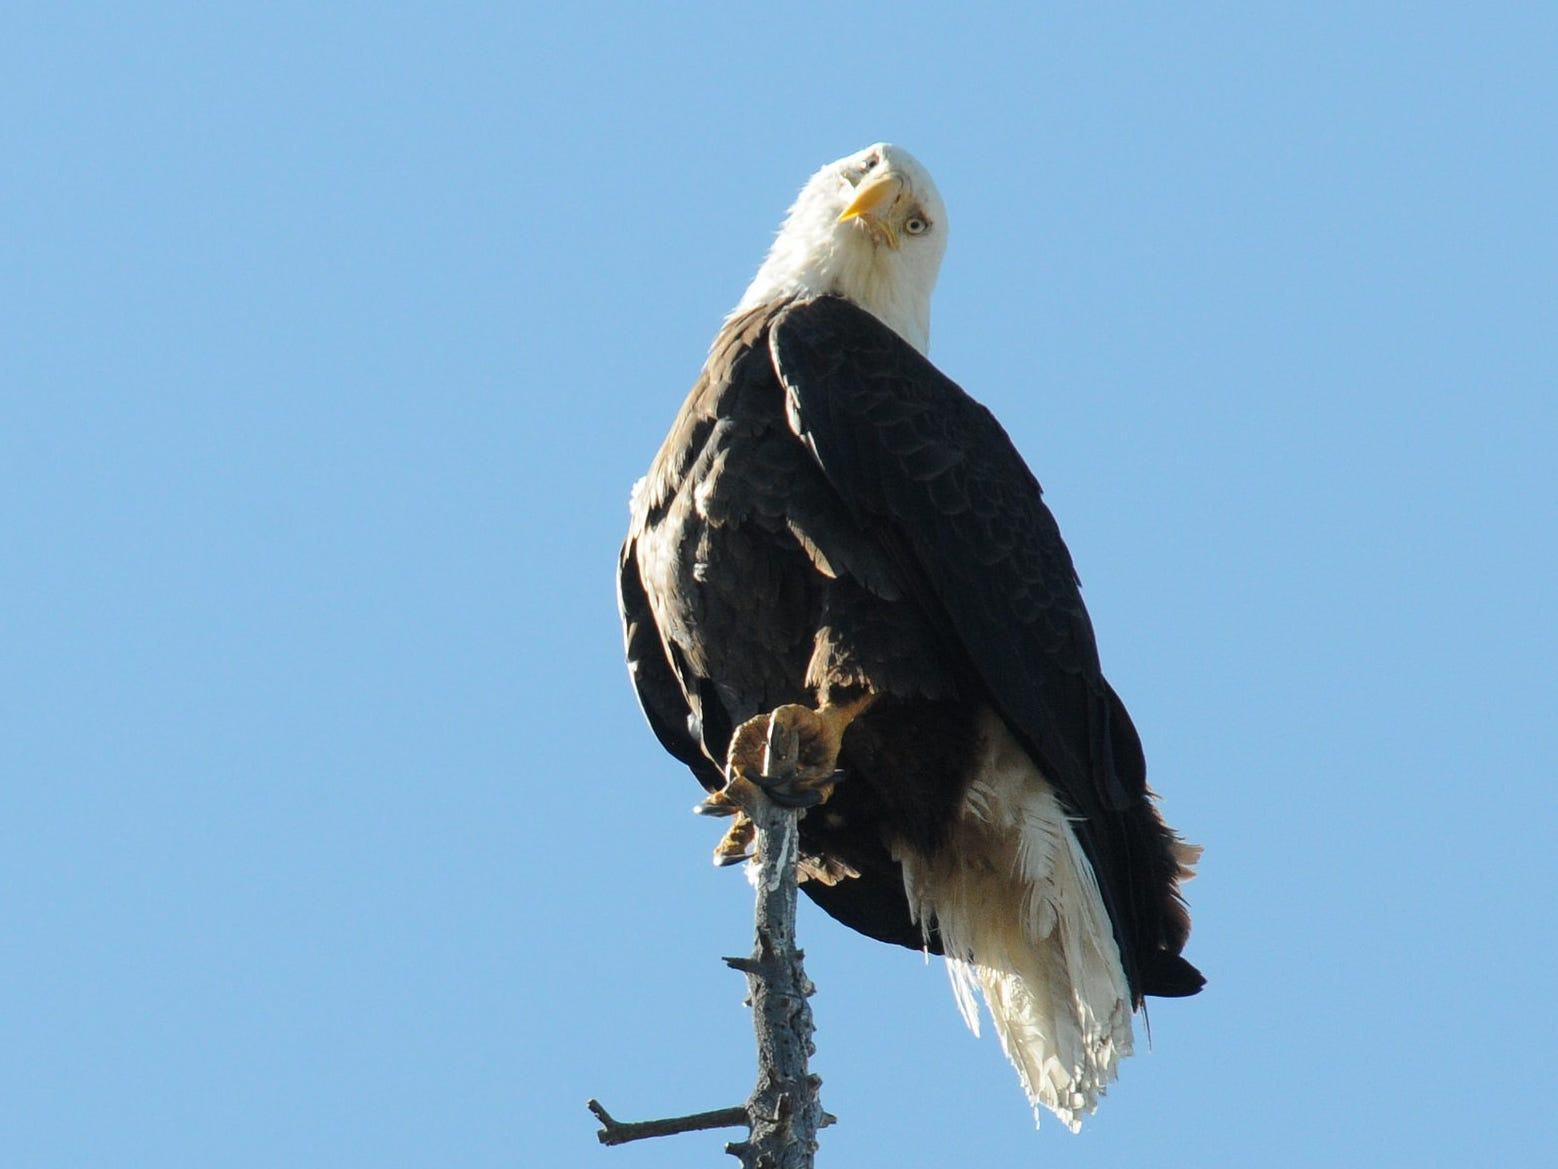 A bald eagle perched atop a tree in Fawskin, Calif., on April 26, 2018. Photo by Robin Eliason.